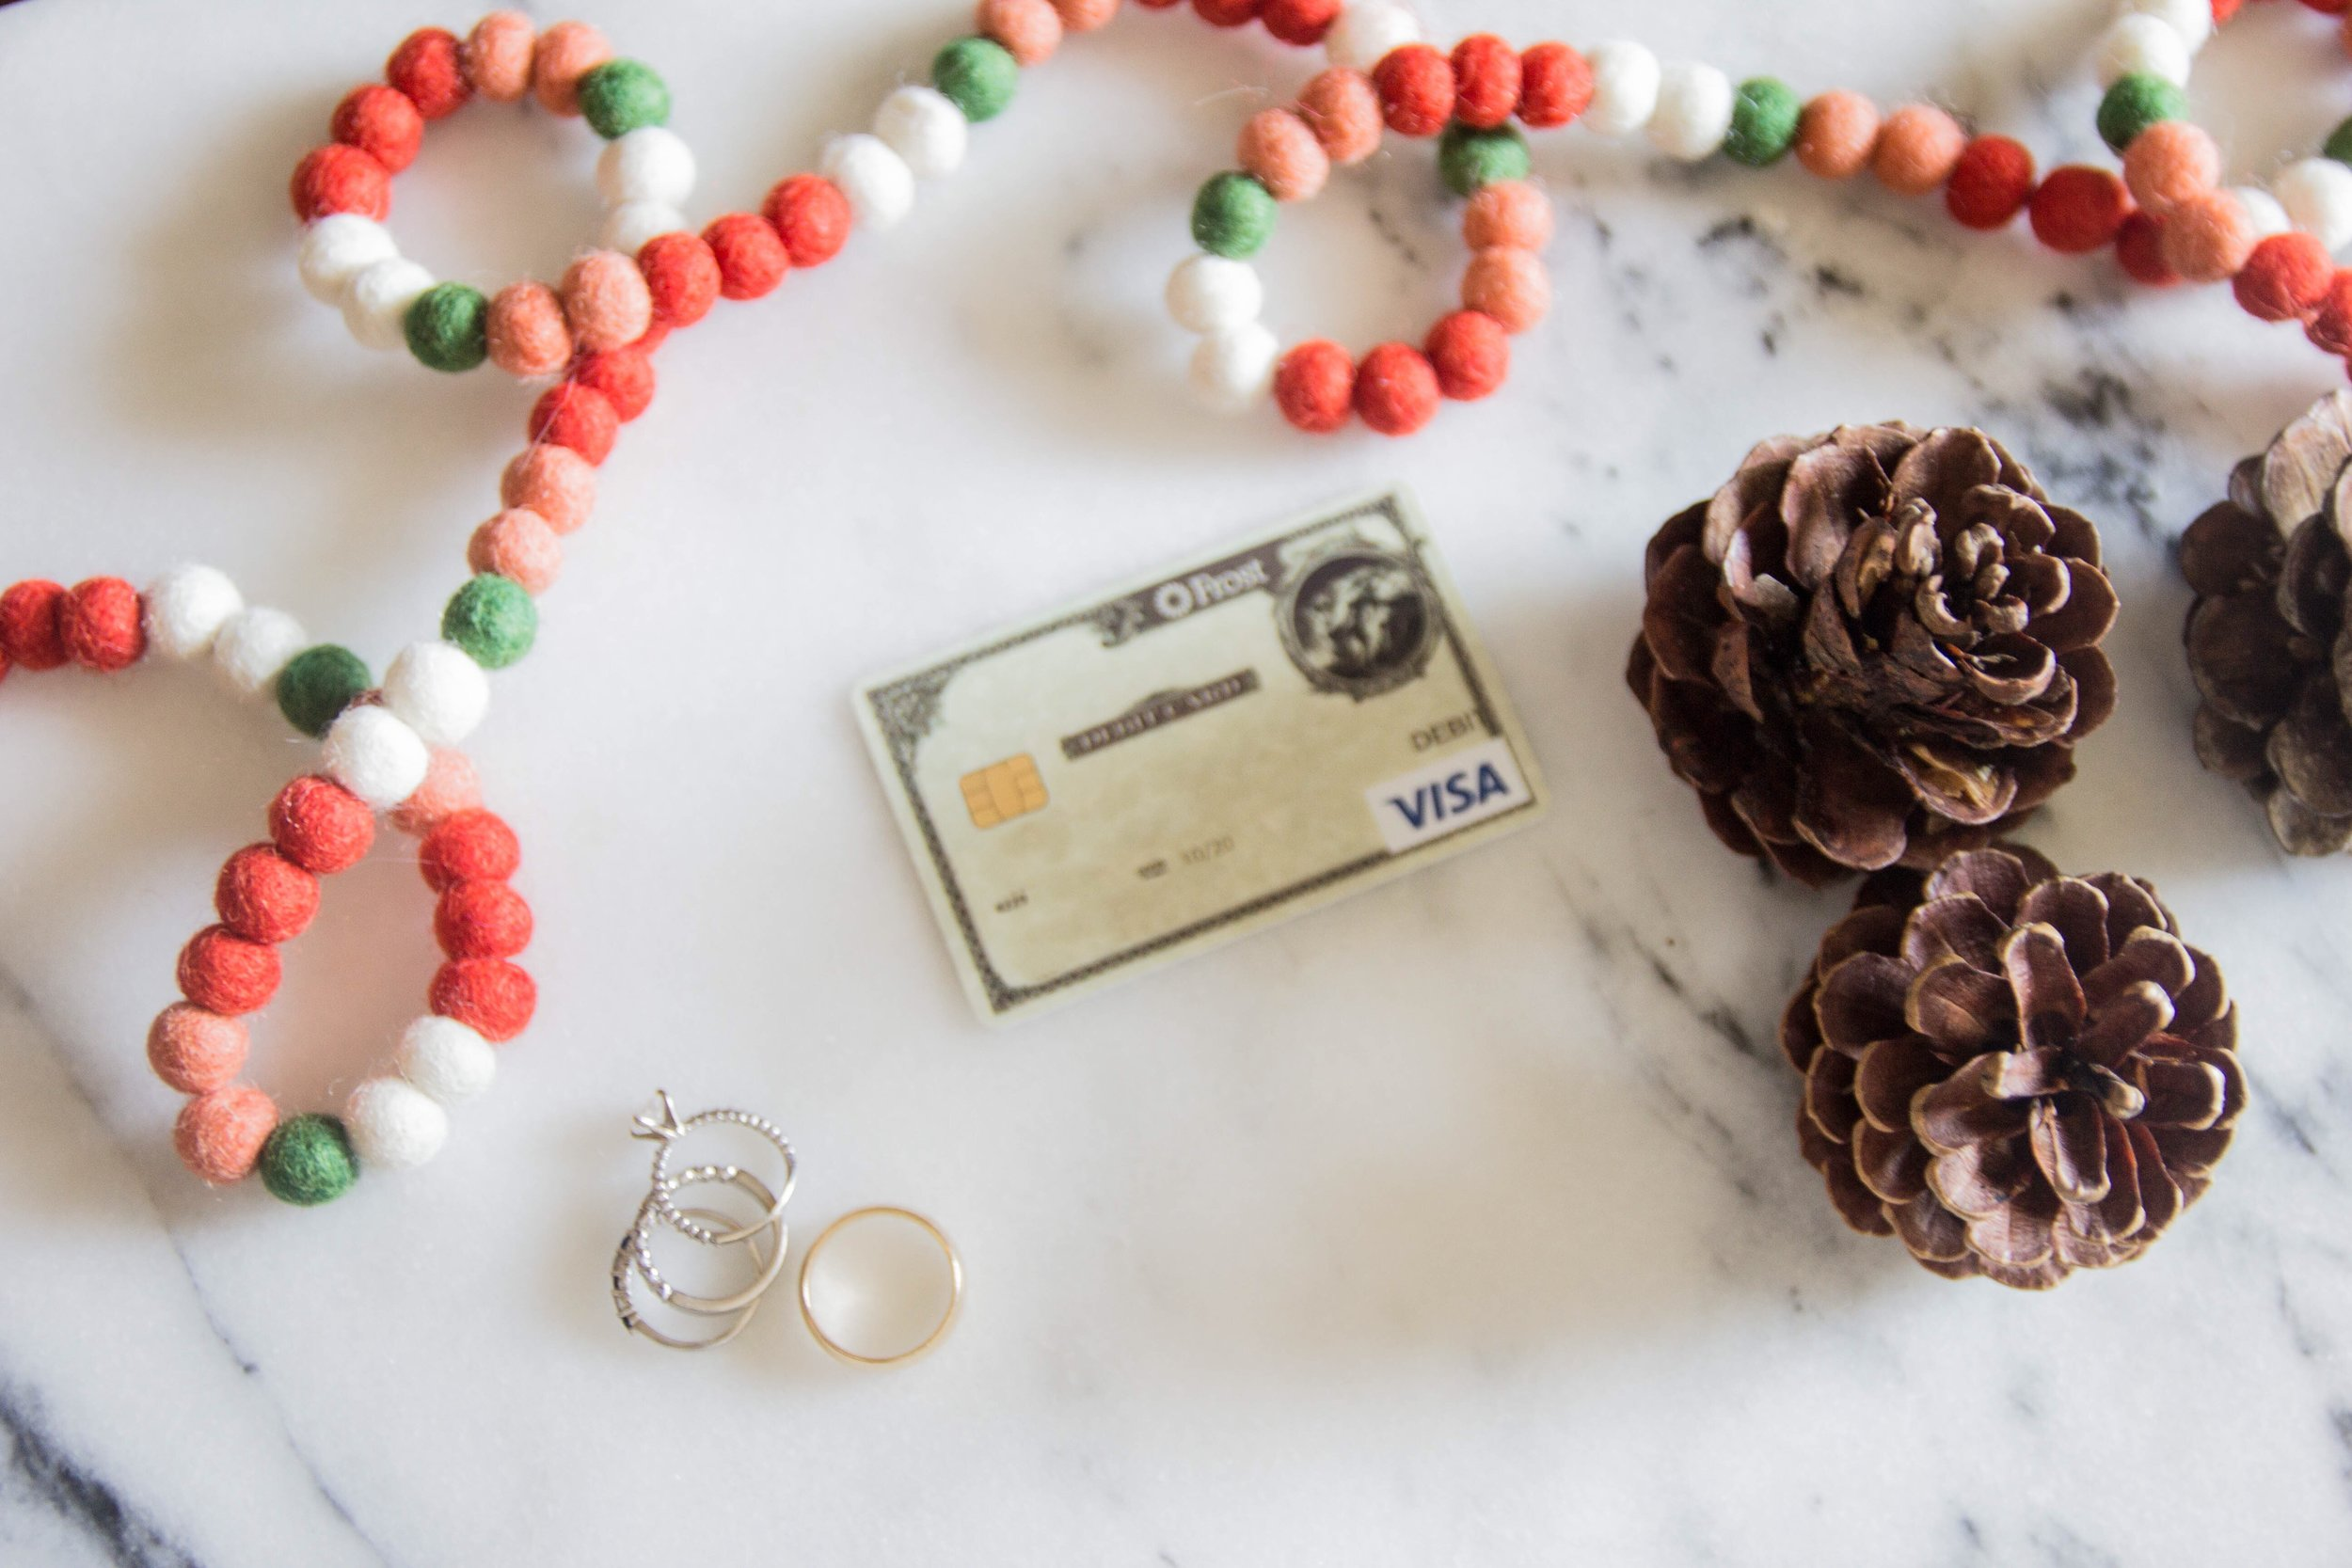 frost bank, navigating finances, minted felt garland, crate and barrel stockings, cinnamon pinecones